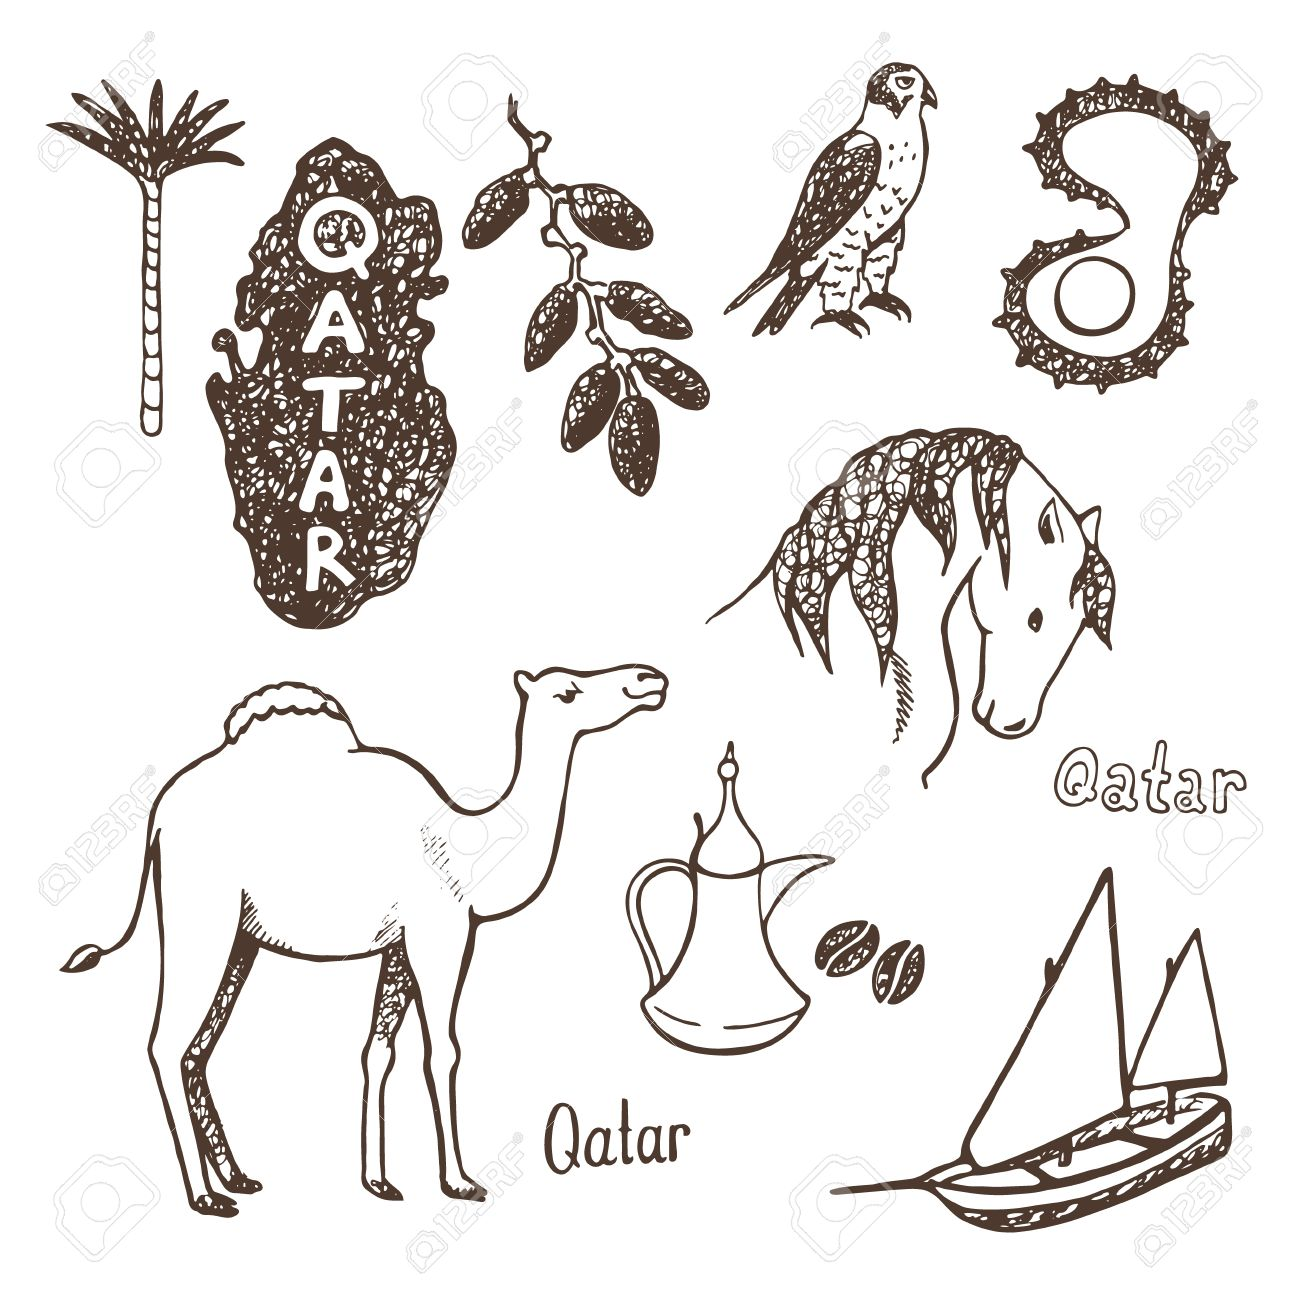 Qatar Country Sketch Icons Collection Stock Vector